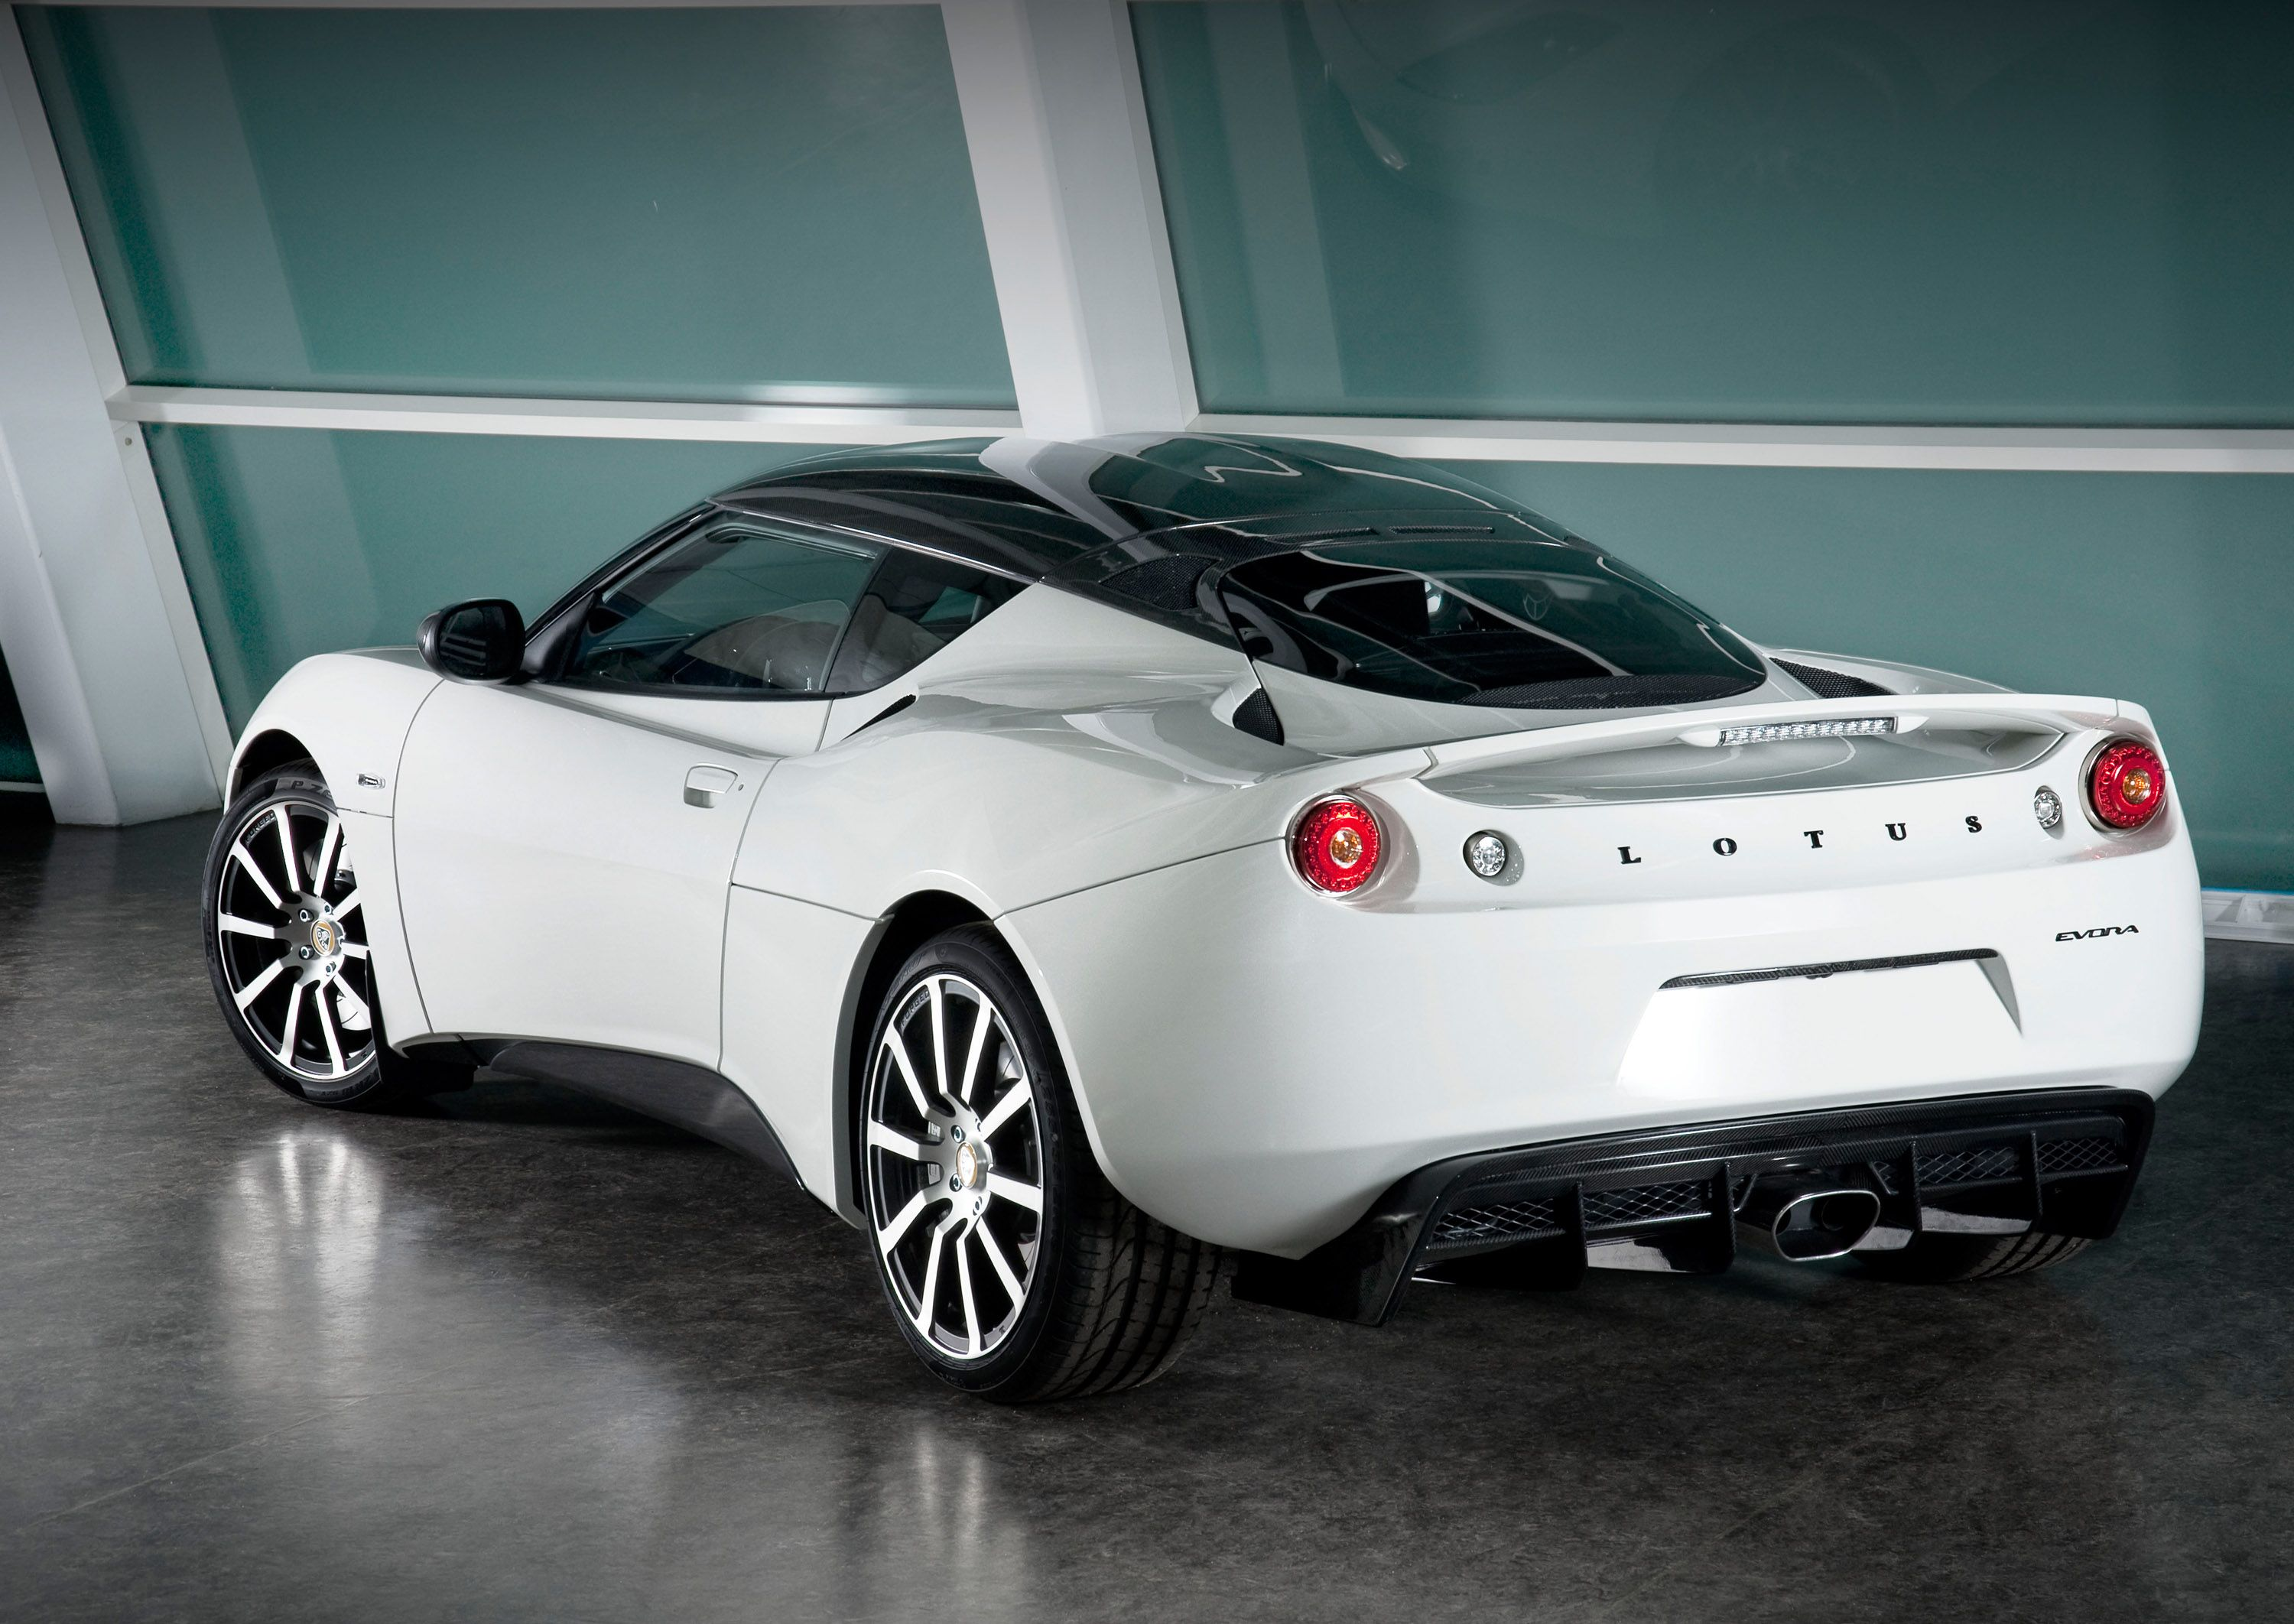 Dream Cars Lotus Evora Rancho Santa Fe Magazine